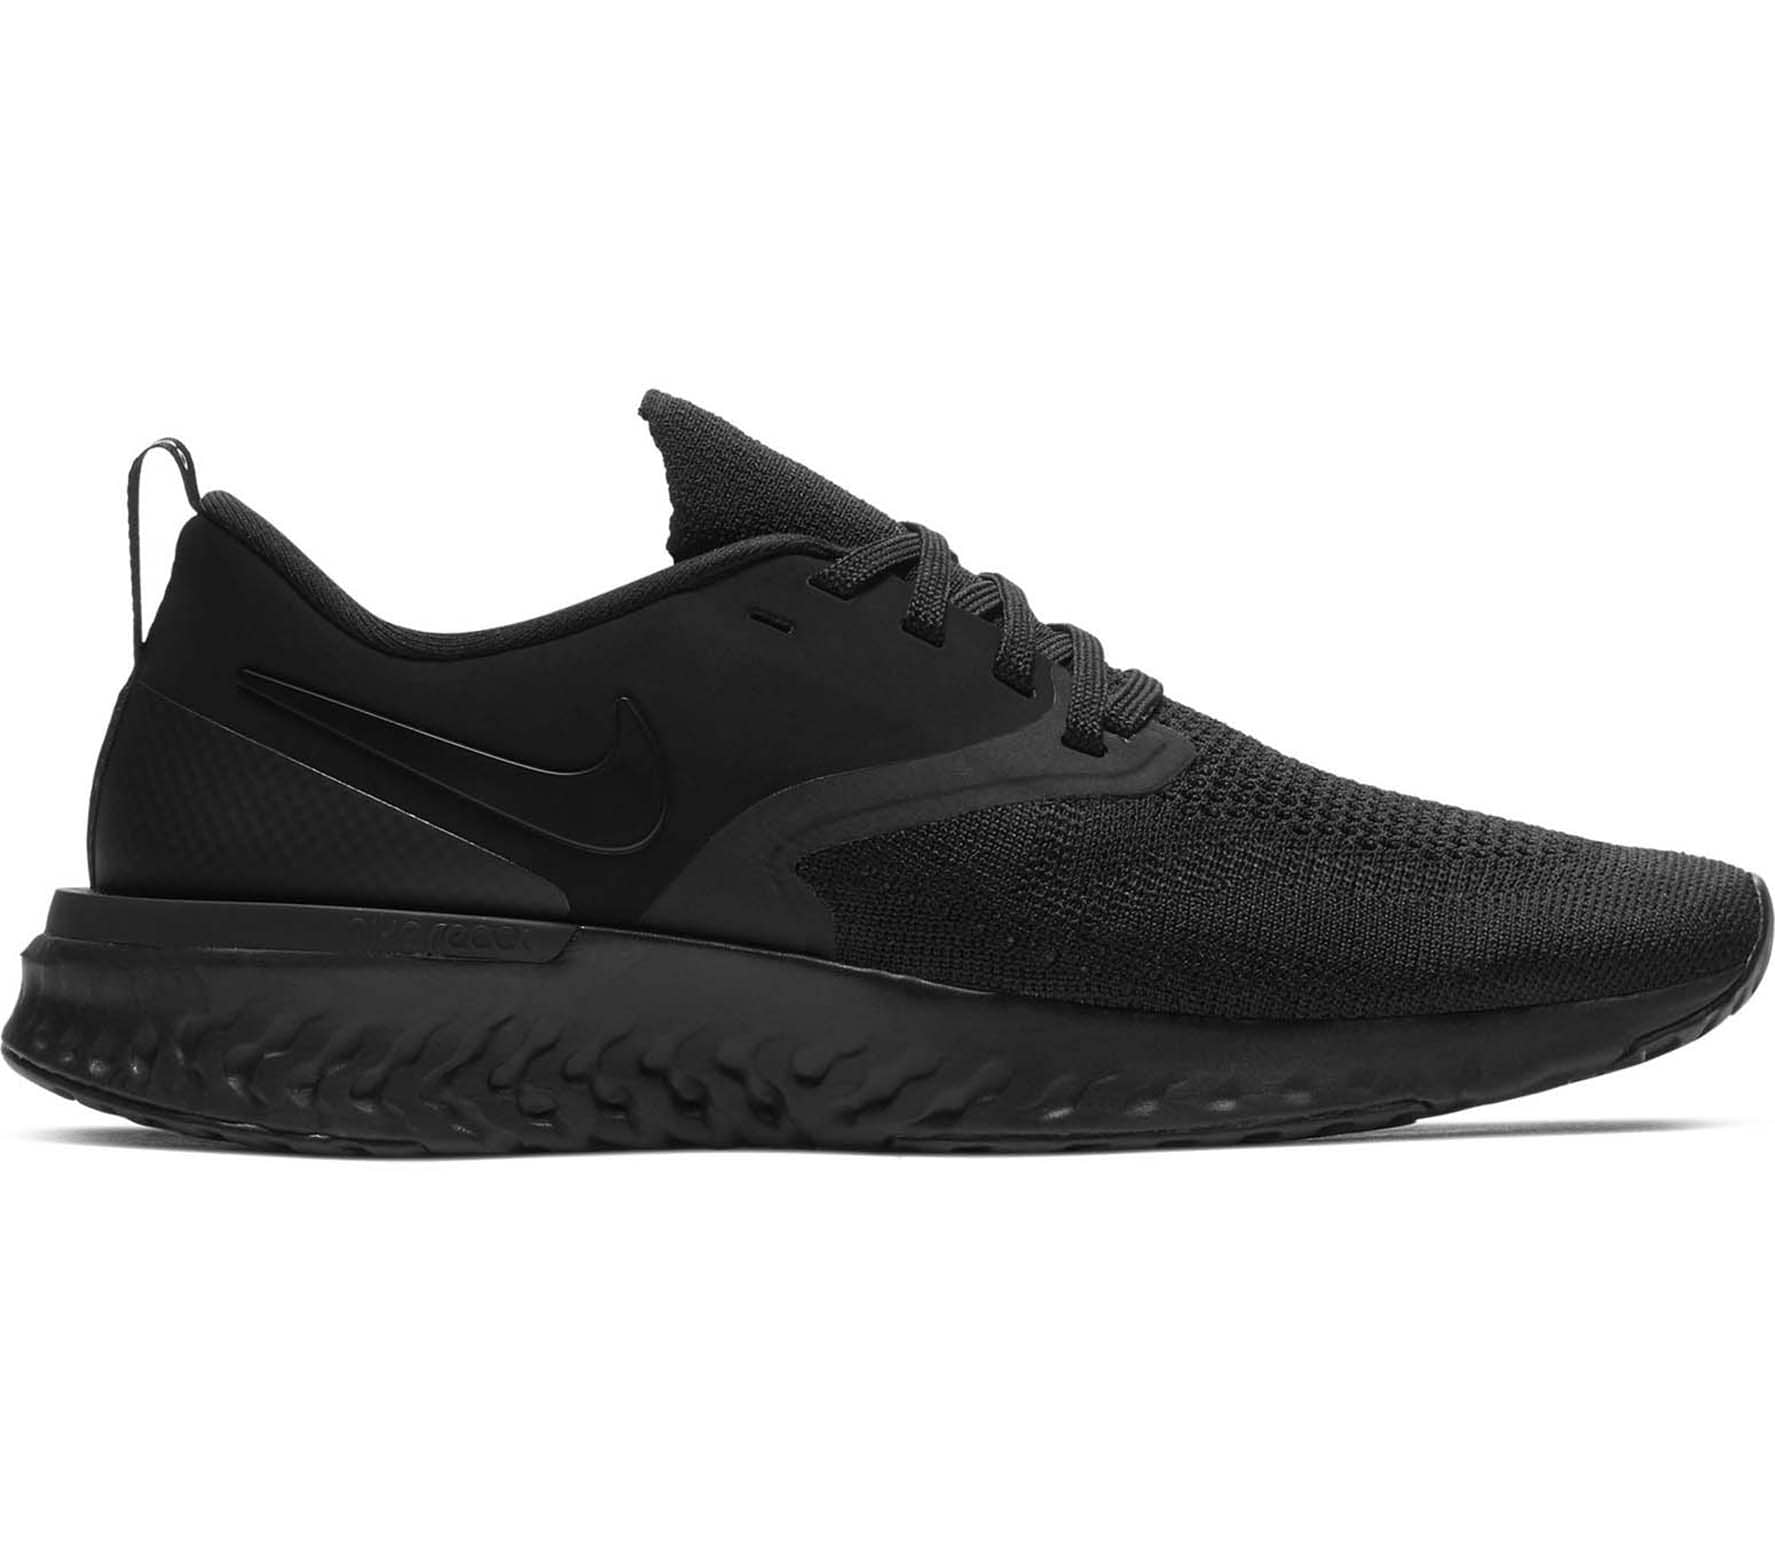 0162a47d29cf Nike - Odyssey React Flyknit 2 women s running shoes (black) - buy ...